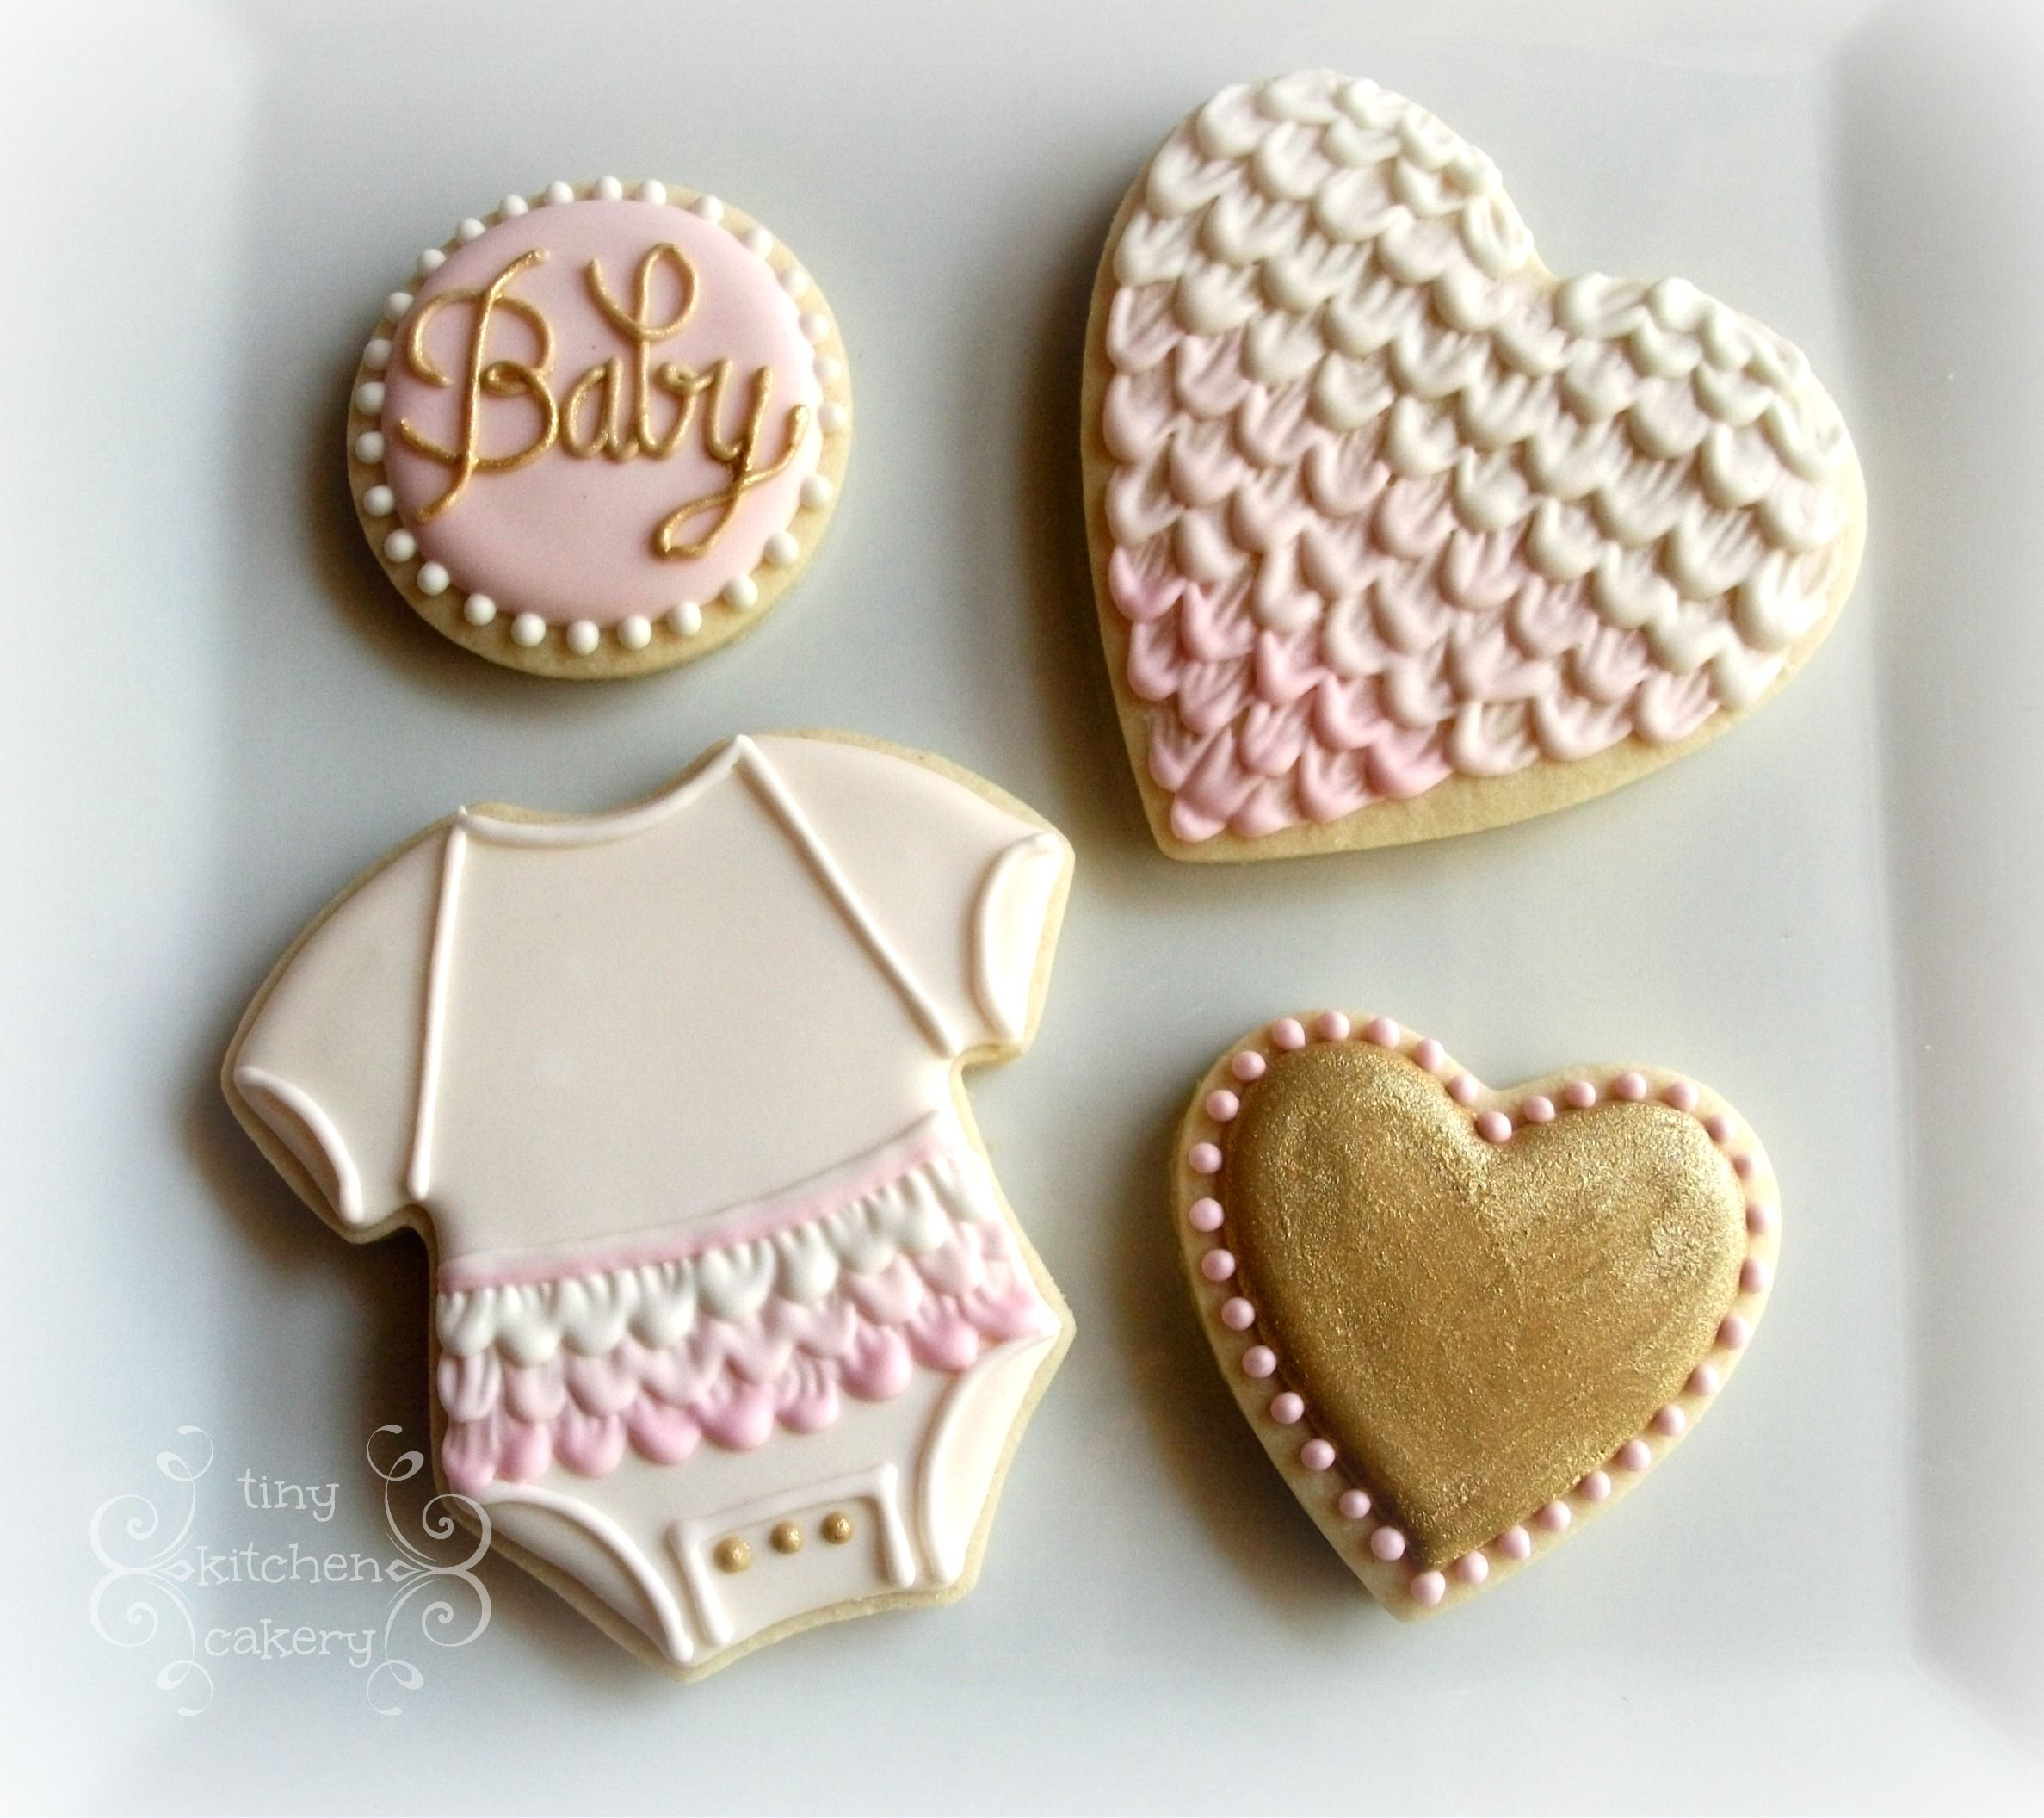 Baby shower cookies set pink and white and gold ruffles